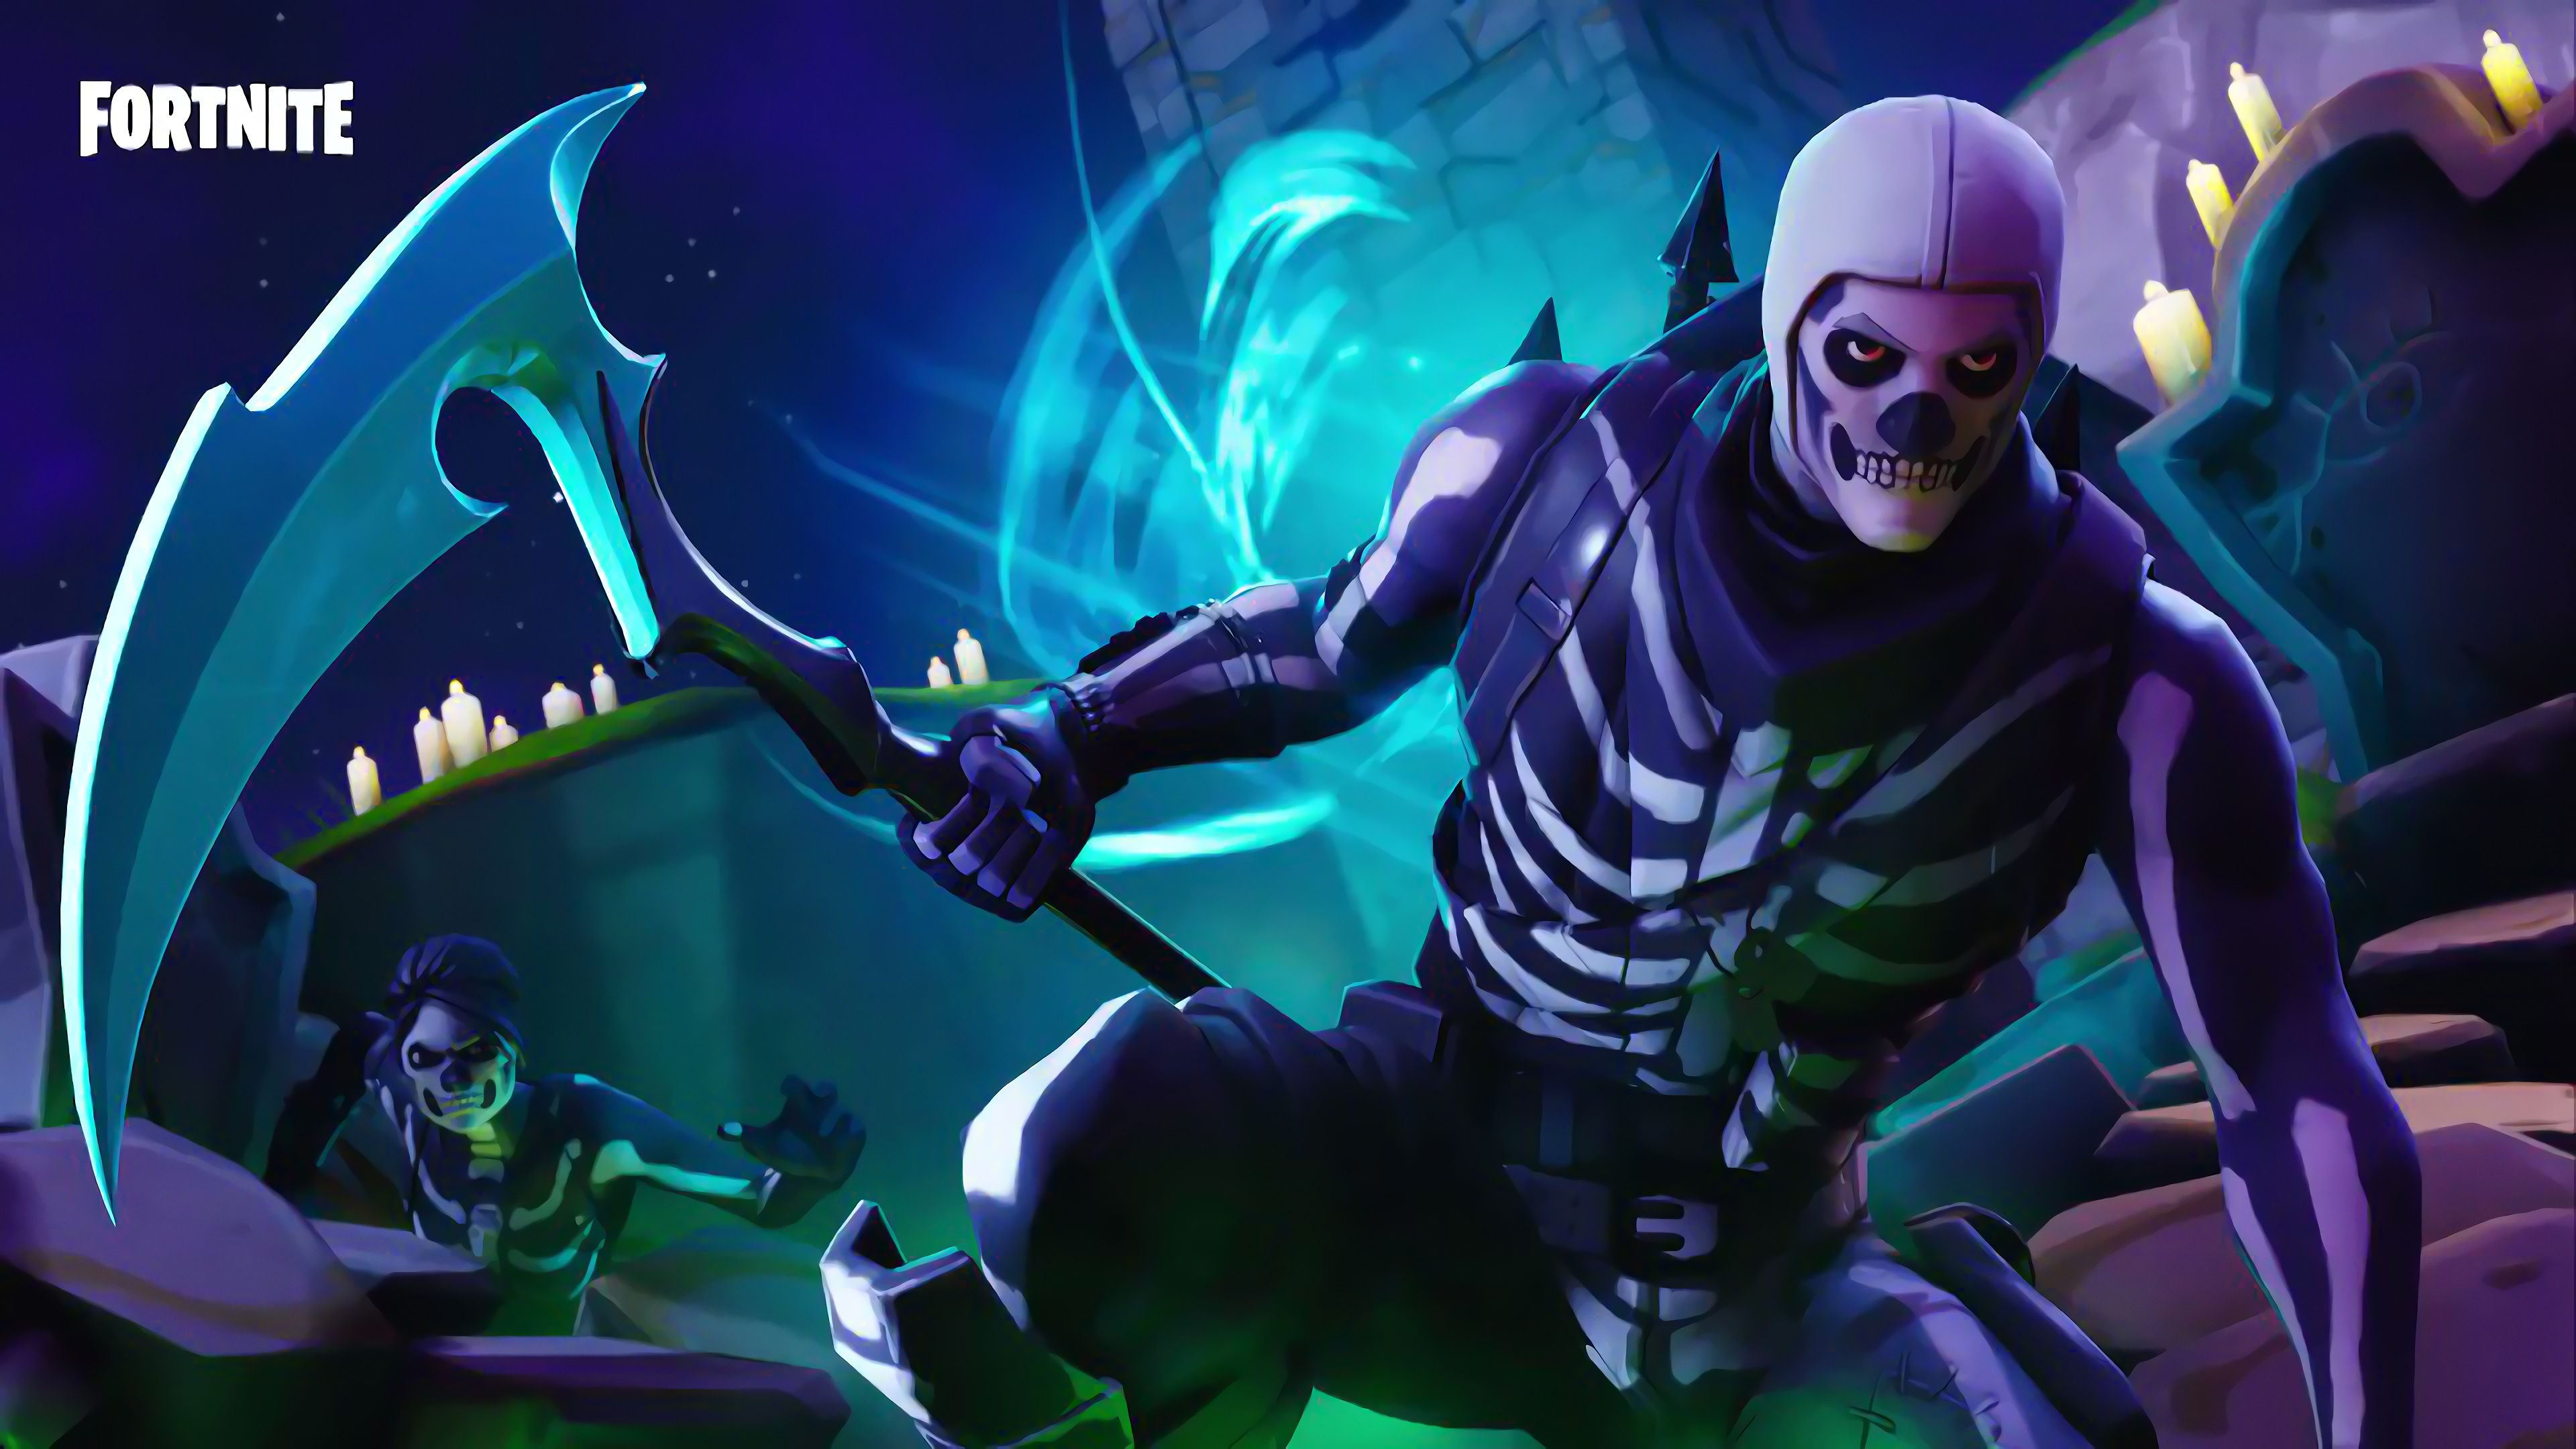 Fondo Fortntie : Get all battle royale cool backgrounds on your phone right now!